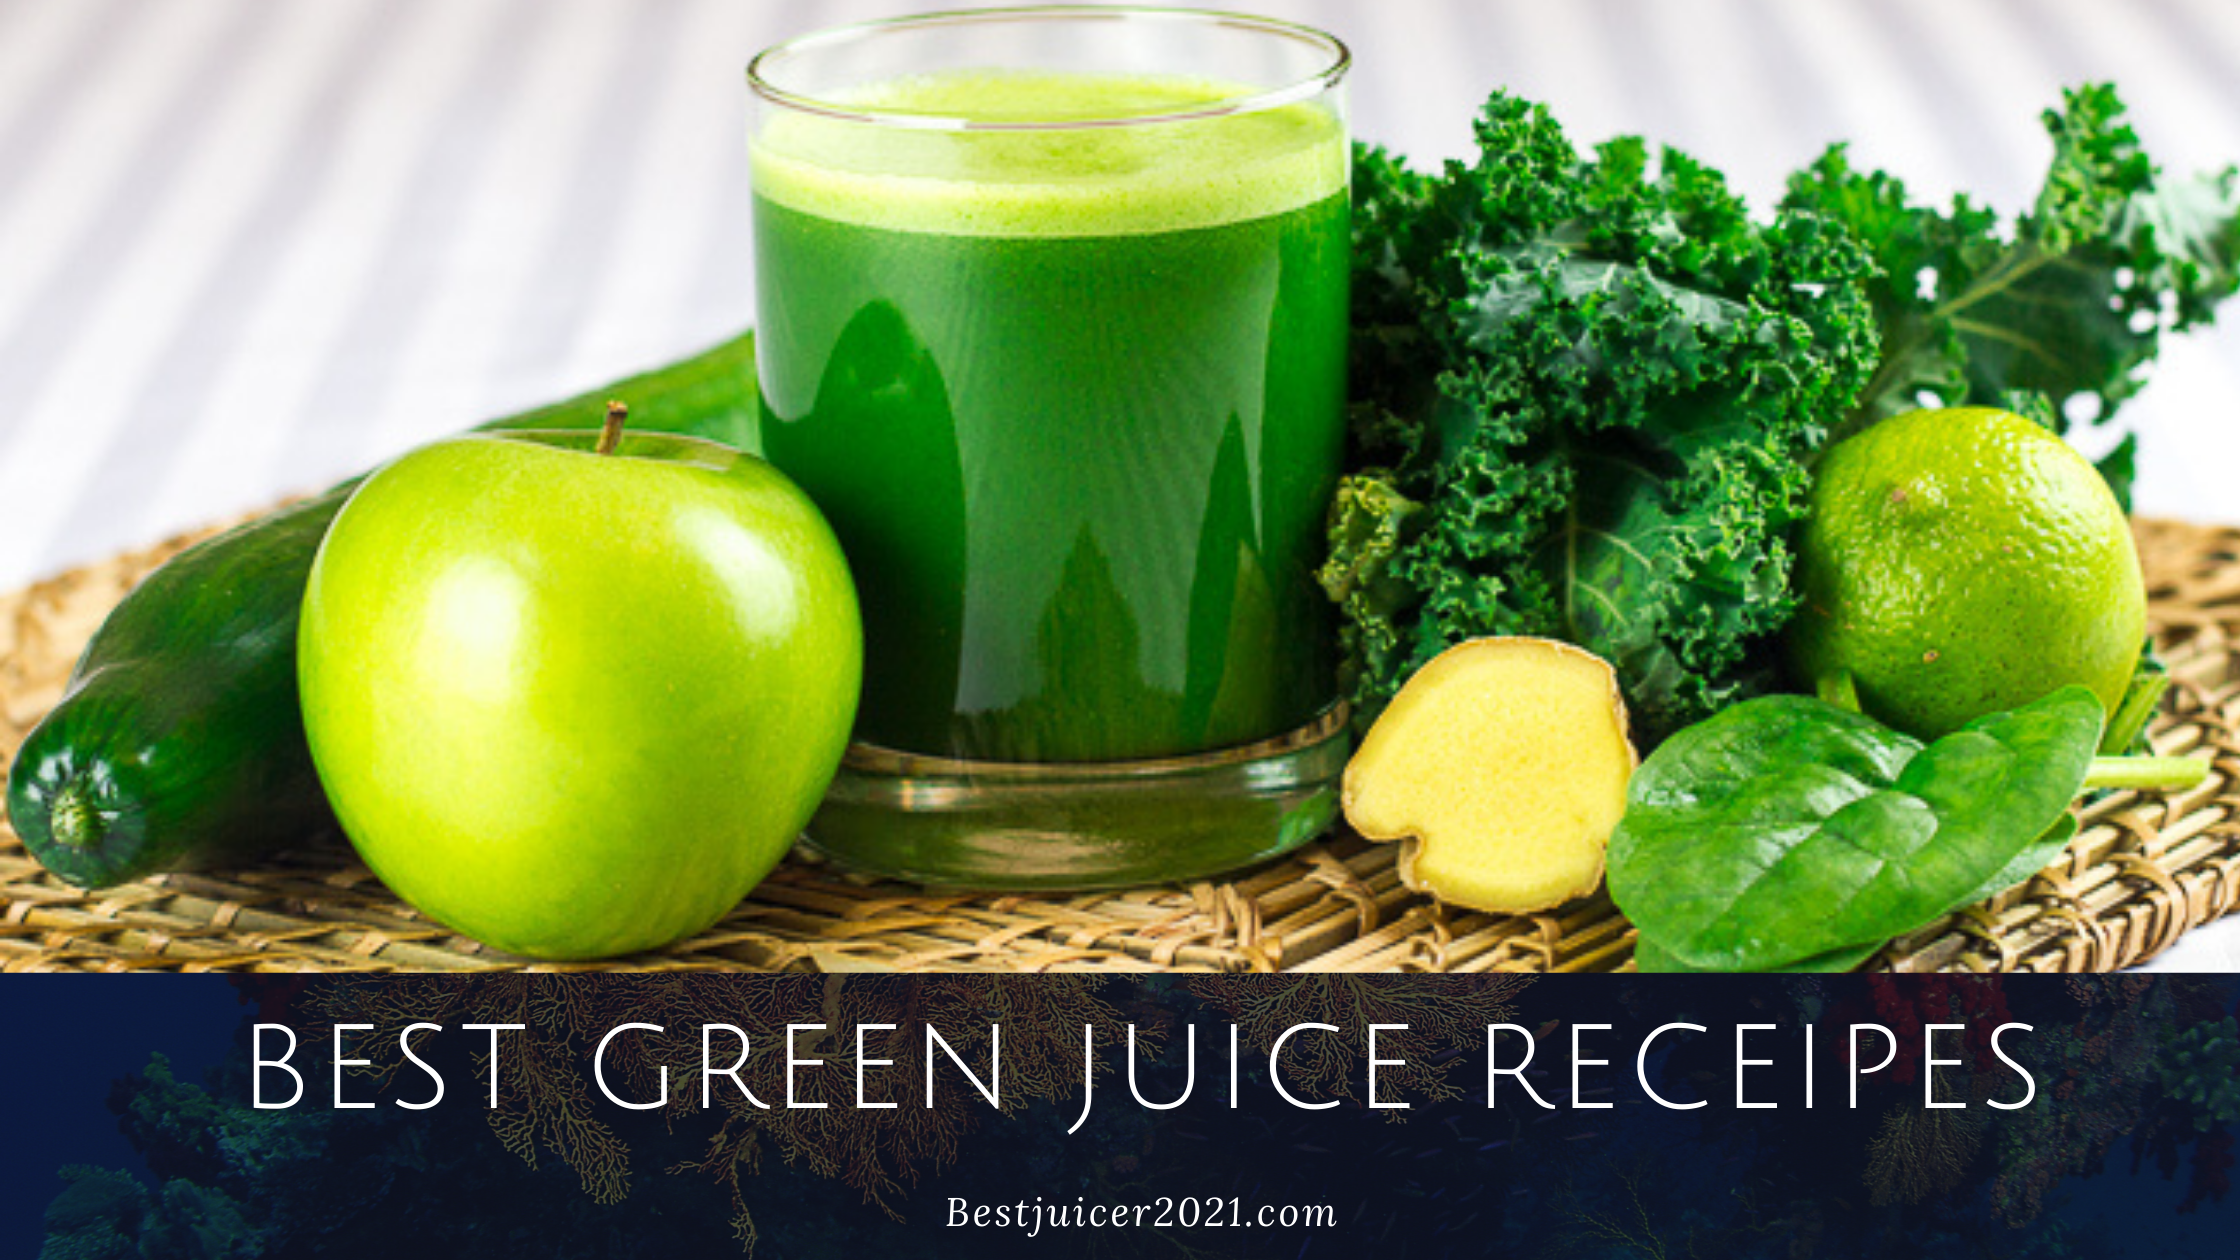 Best Green Juice Recipes